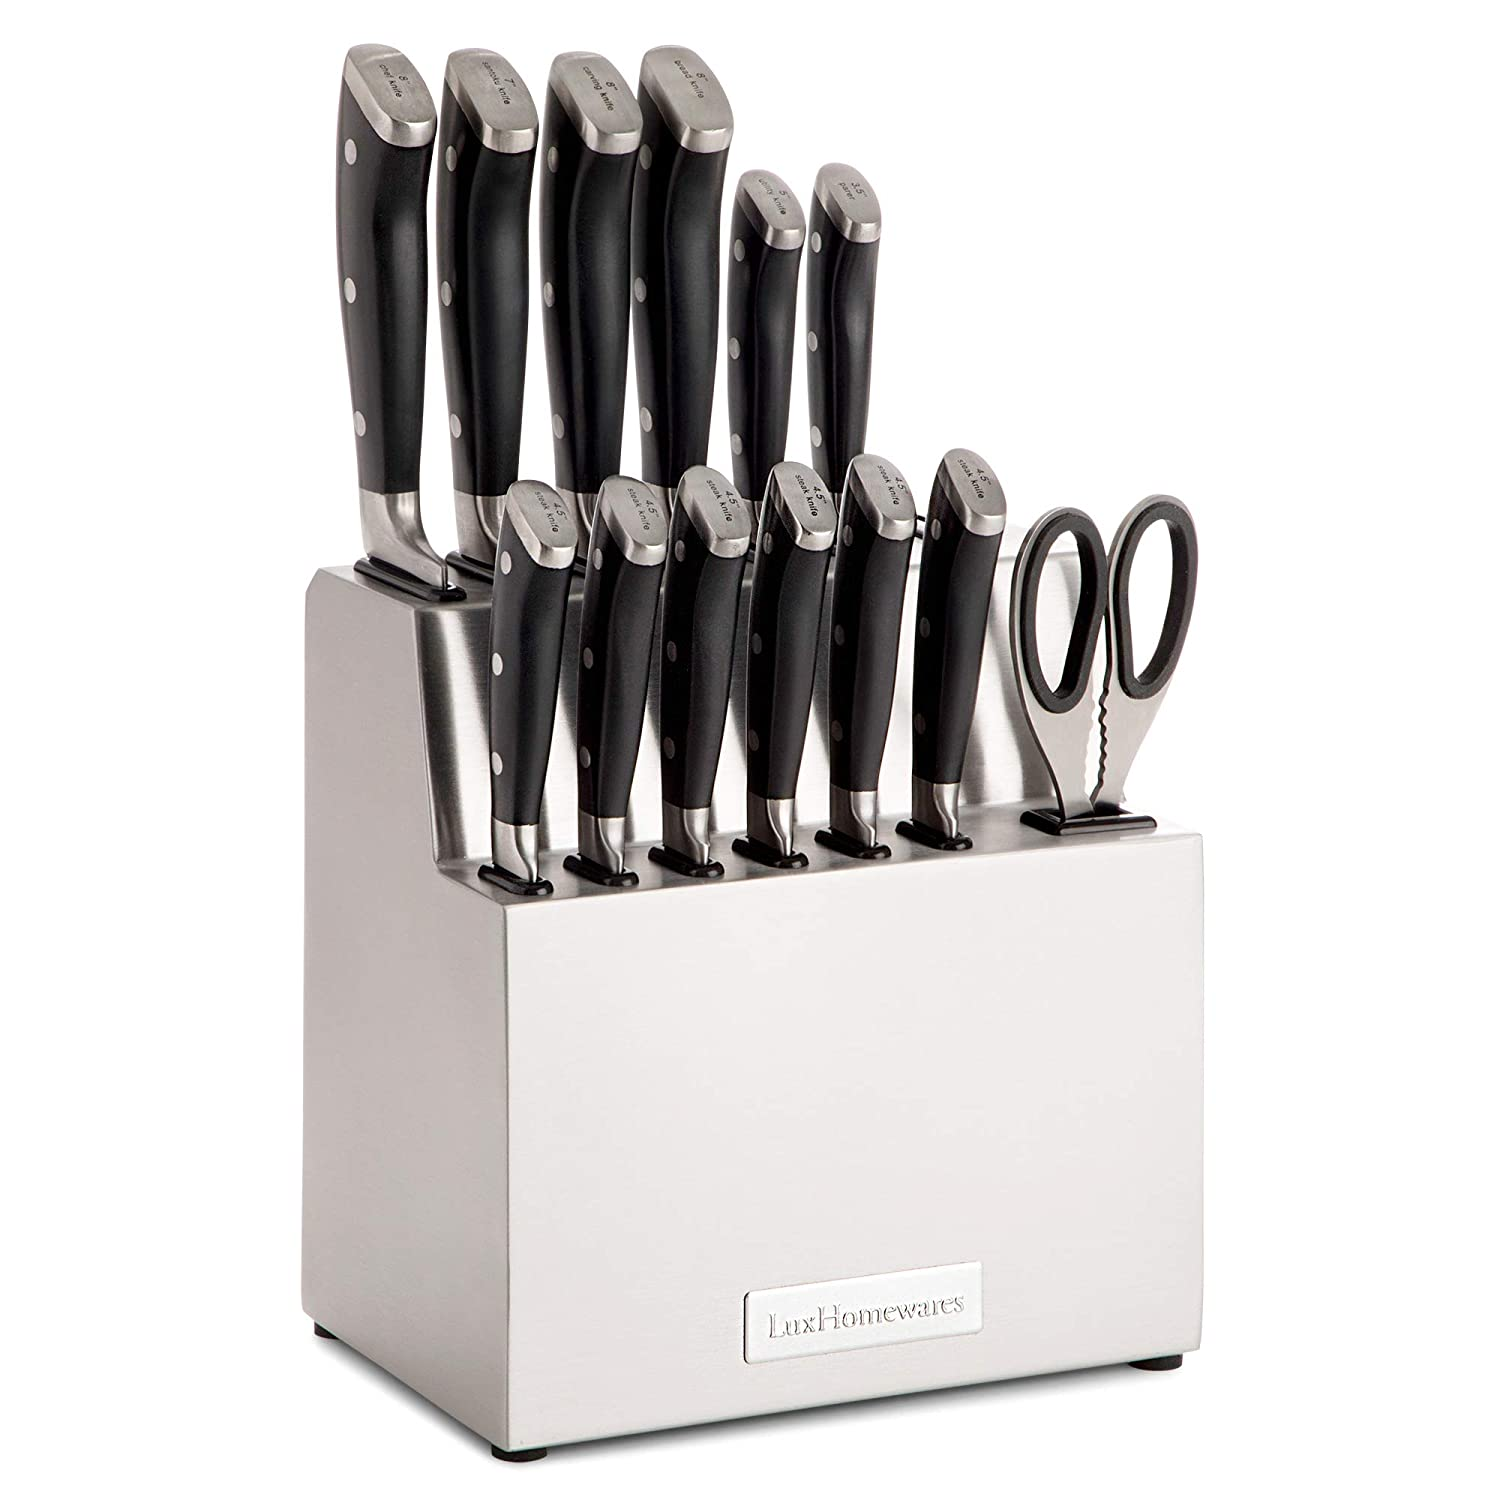 Kitchen Knife Set with Block, 14 pc, Stainless Steel - Complete Culinary Sets - Gourmet Chef, Pairing, Cooking, Steak Knives with Scissors and Built-In Sharpener - All-Purpose, Full Tang